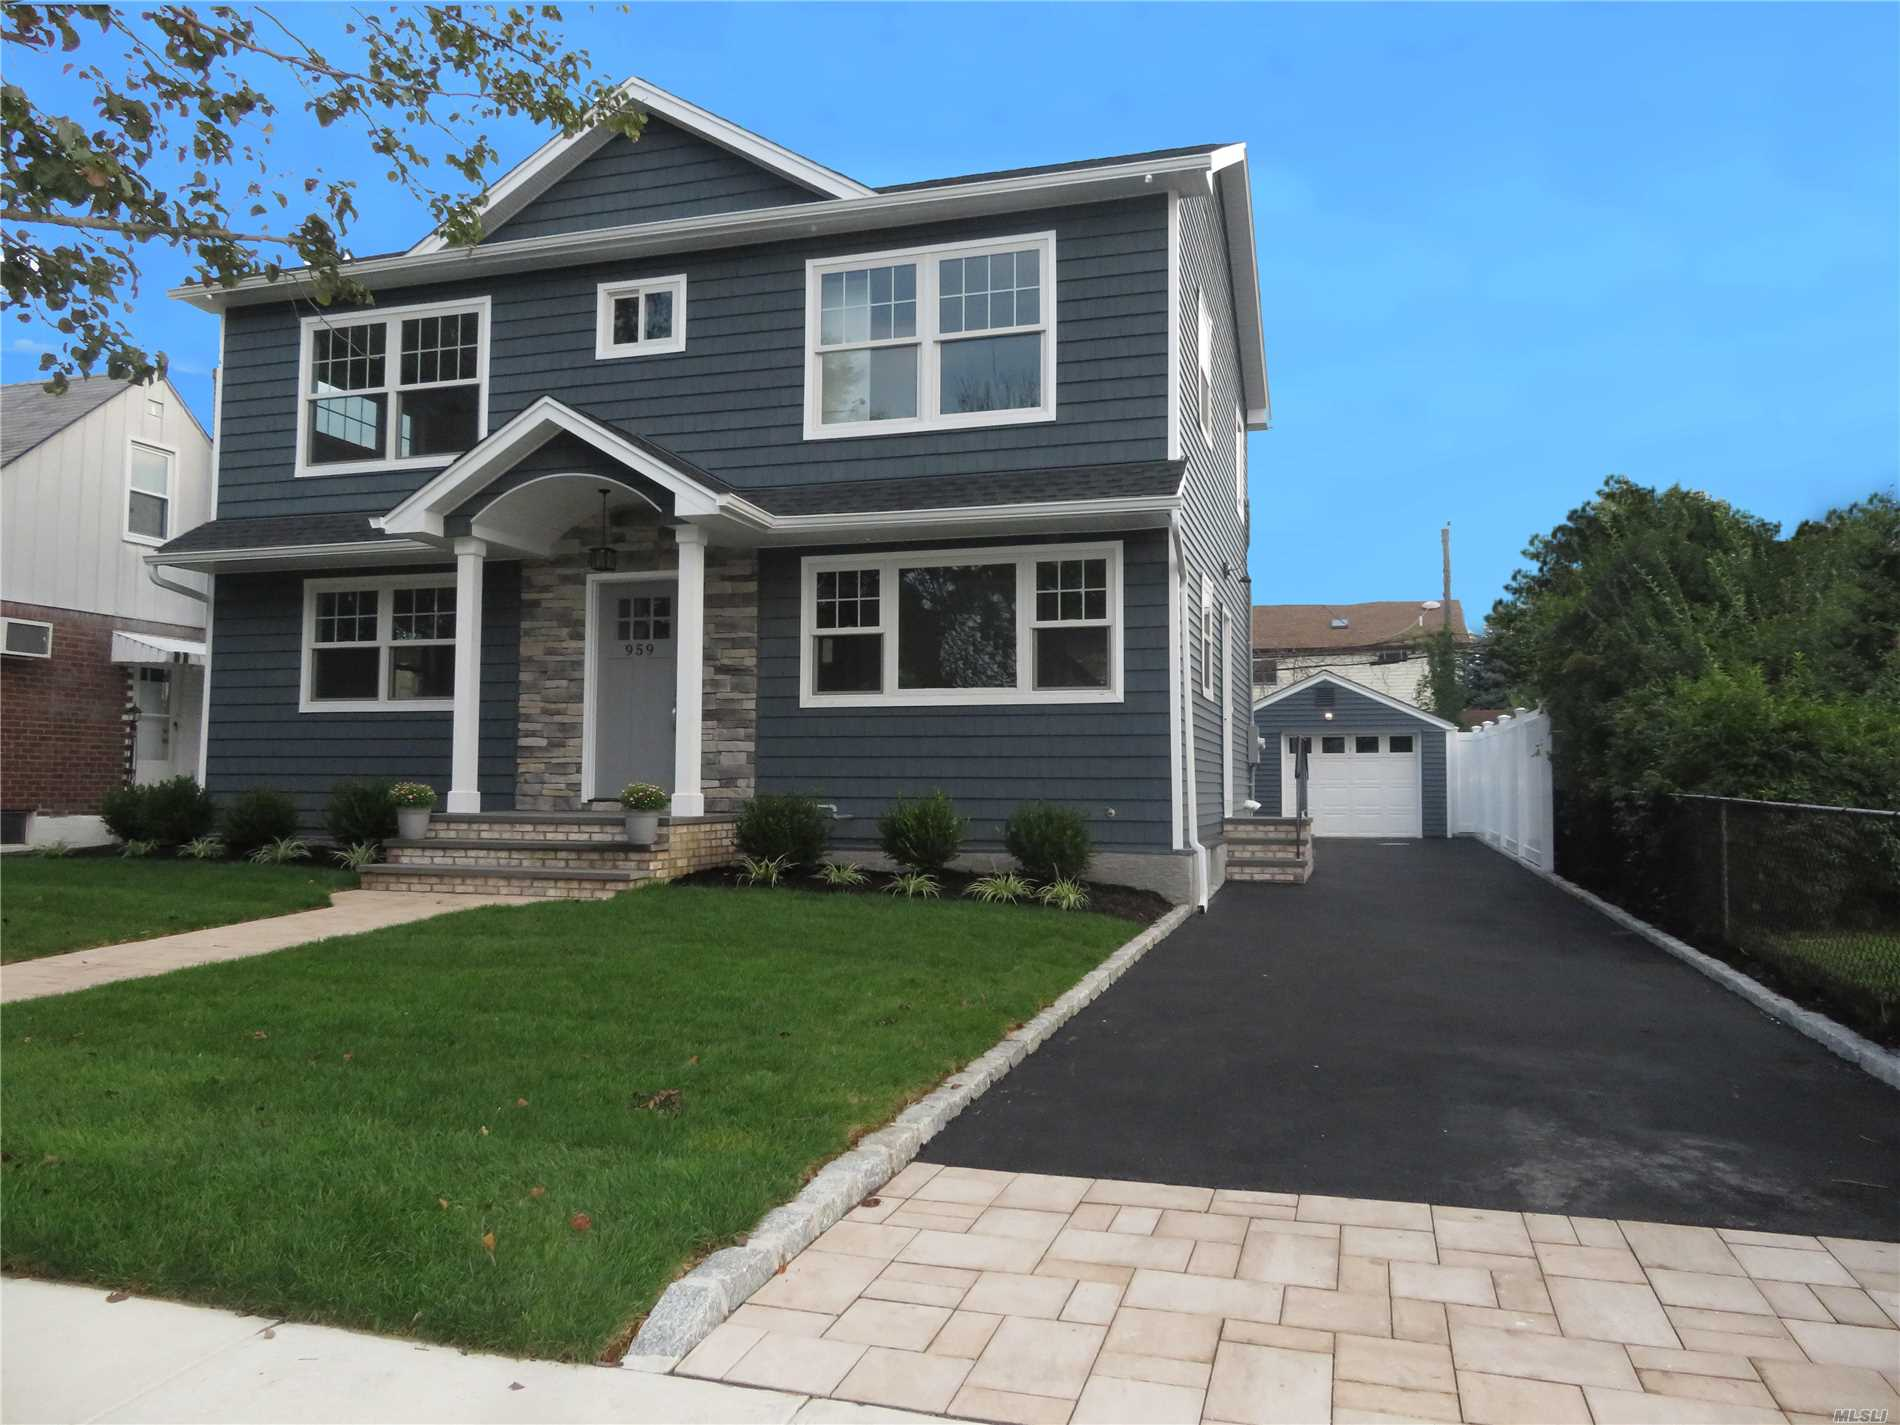 Come See This Gorgeous Open Layout Colonial New Build Boasting An Eik W/Quartz Counters And High-End Appliances, 4 Bedrooms, 2.5 Baths, 1.5 Car Garage, 200 Amps, Cac, Woof Floors And Top Notch Finish Work From Top To Bottom, Inside And Out!